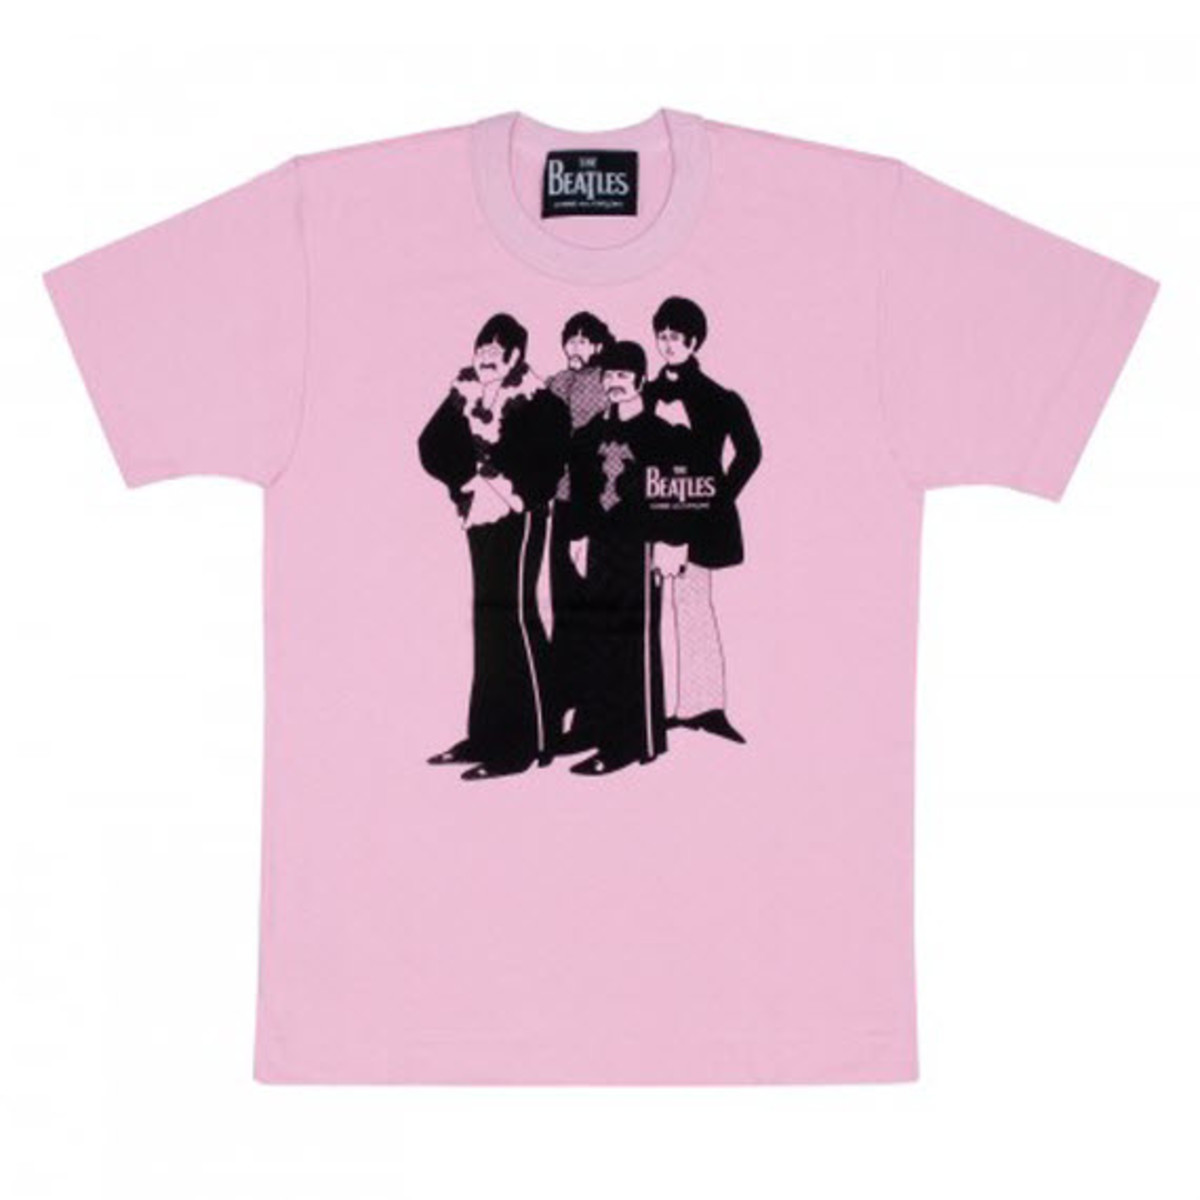 comme-des-garcons-x-the-beatles-the-beatles-springsummer-2013-capsule-collection-10